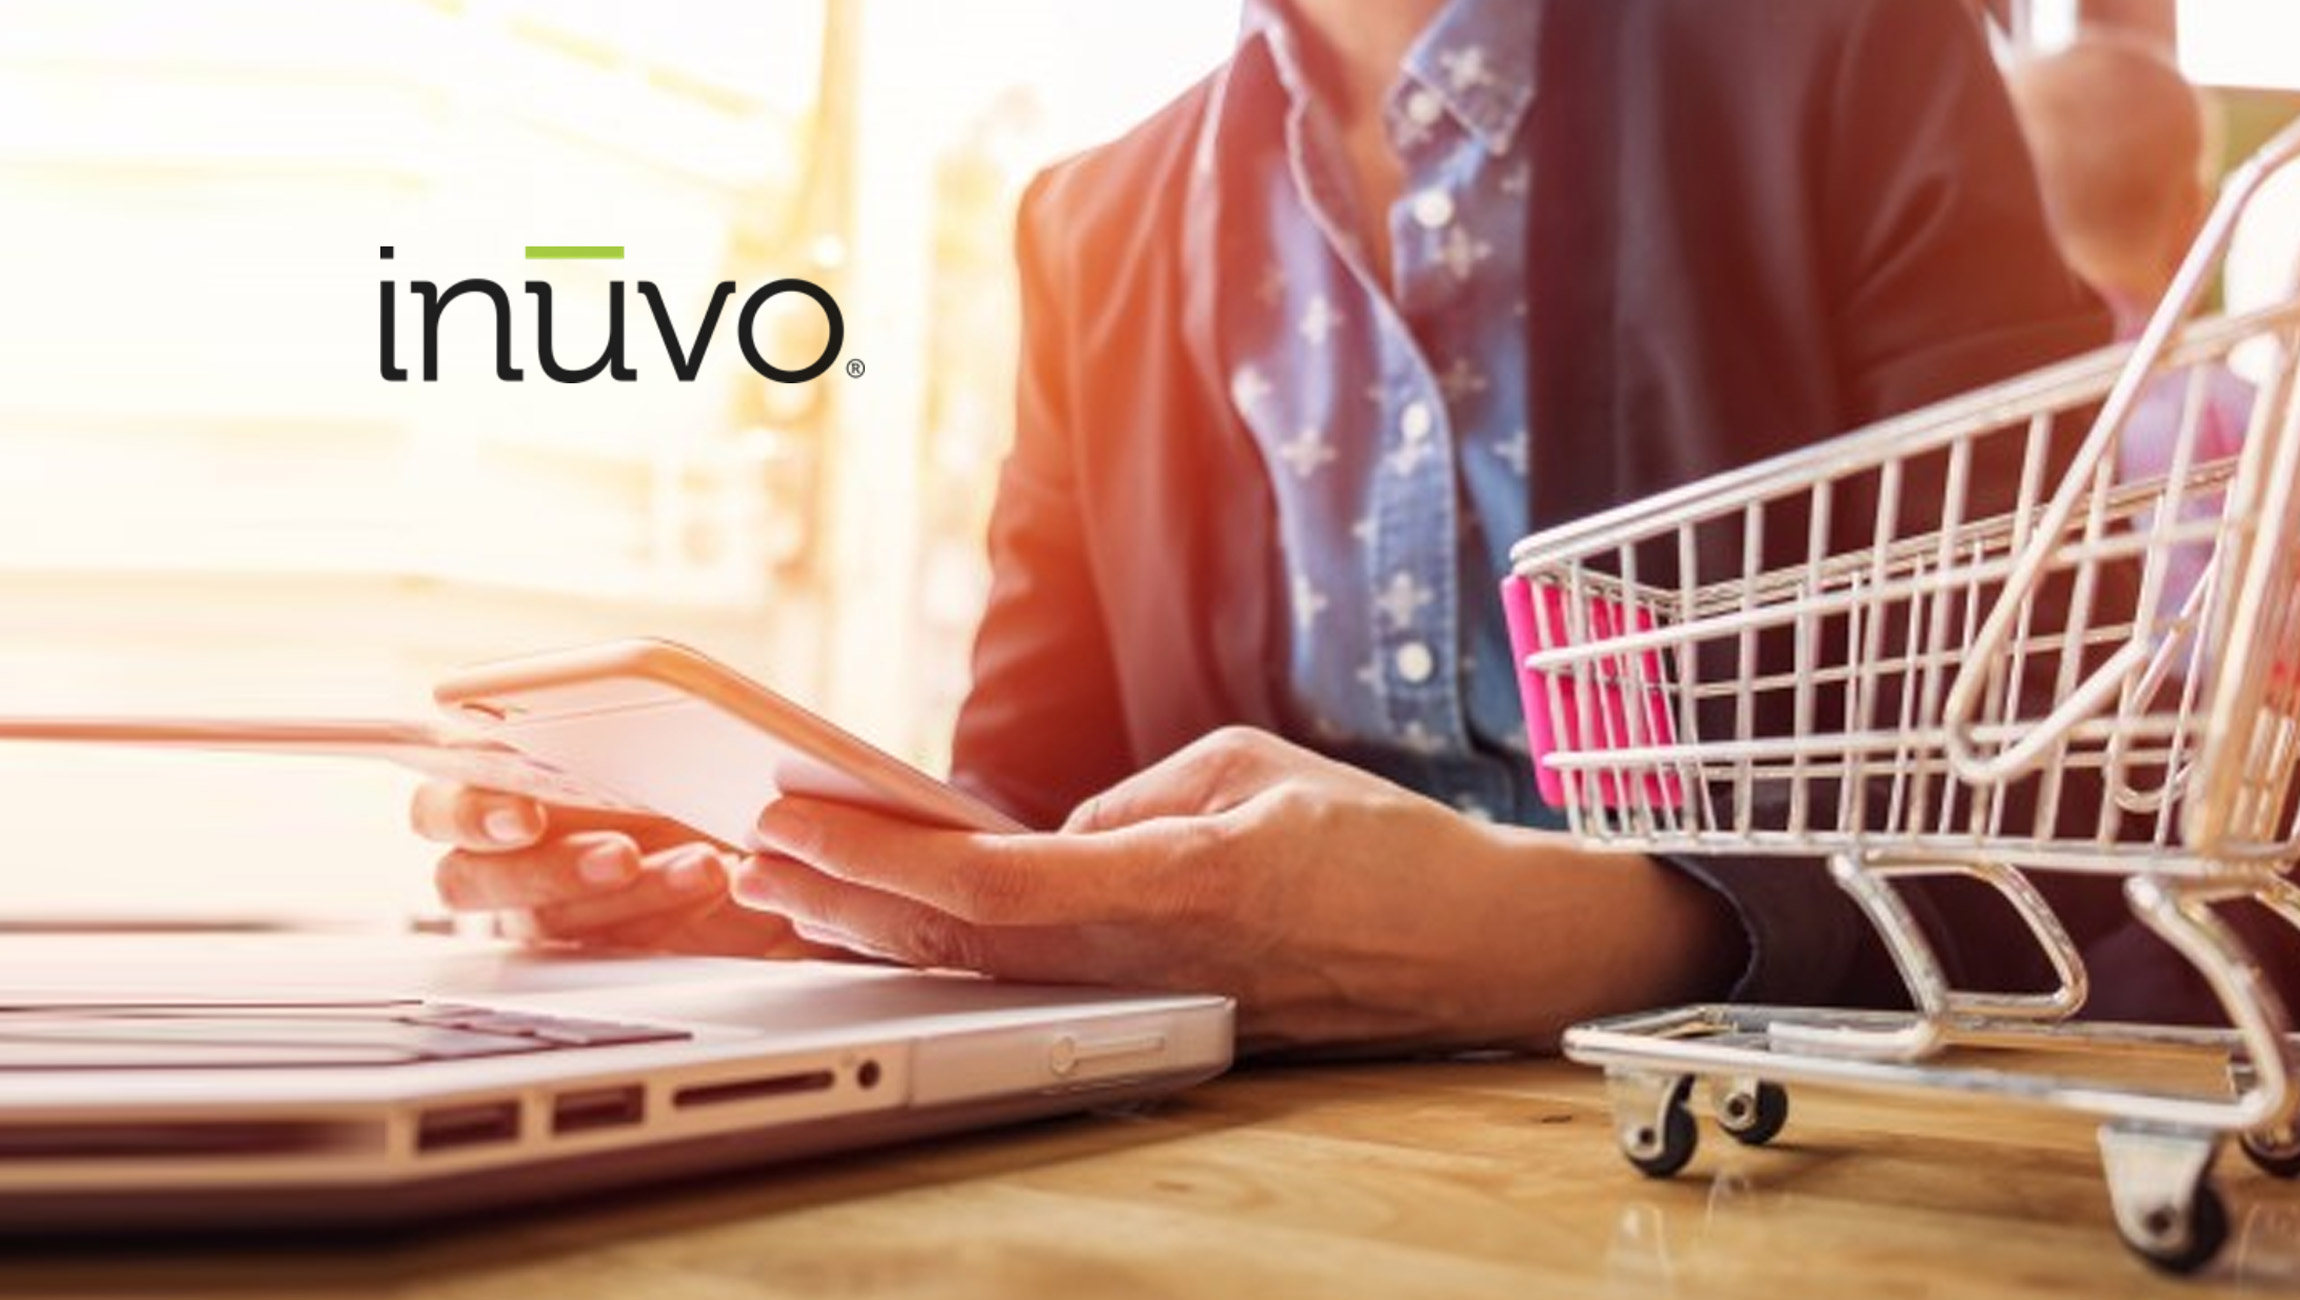 National Luxury Home Retailer Realizes 88:1 Return on Ad Spend with Inuvo's IntentKey